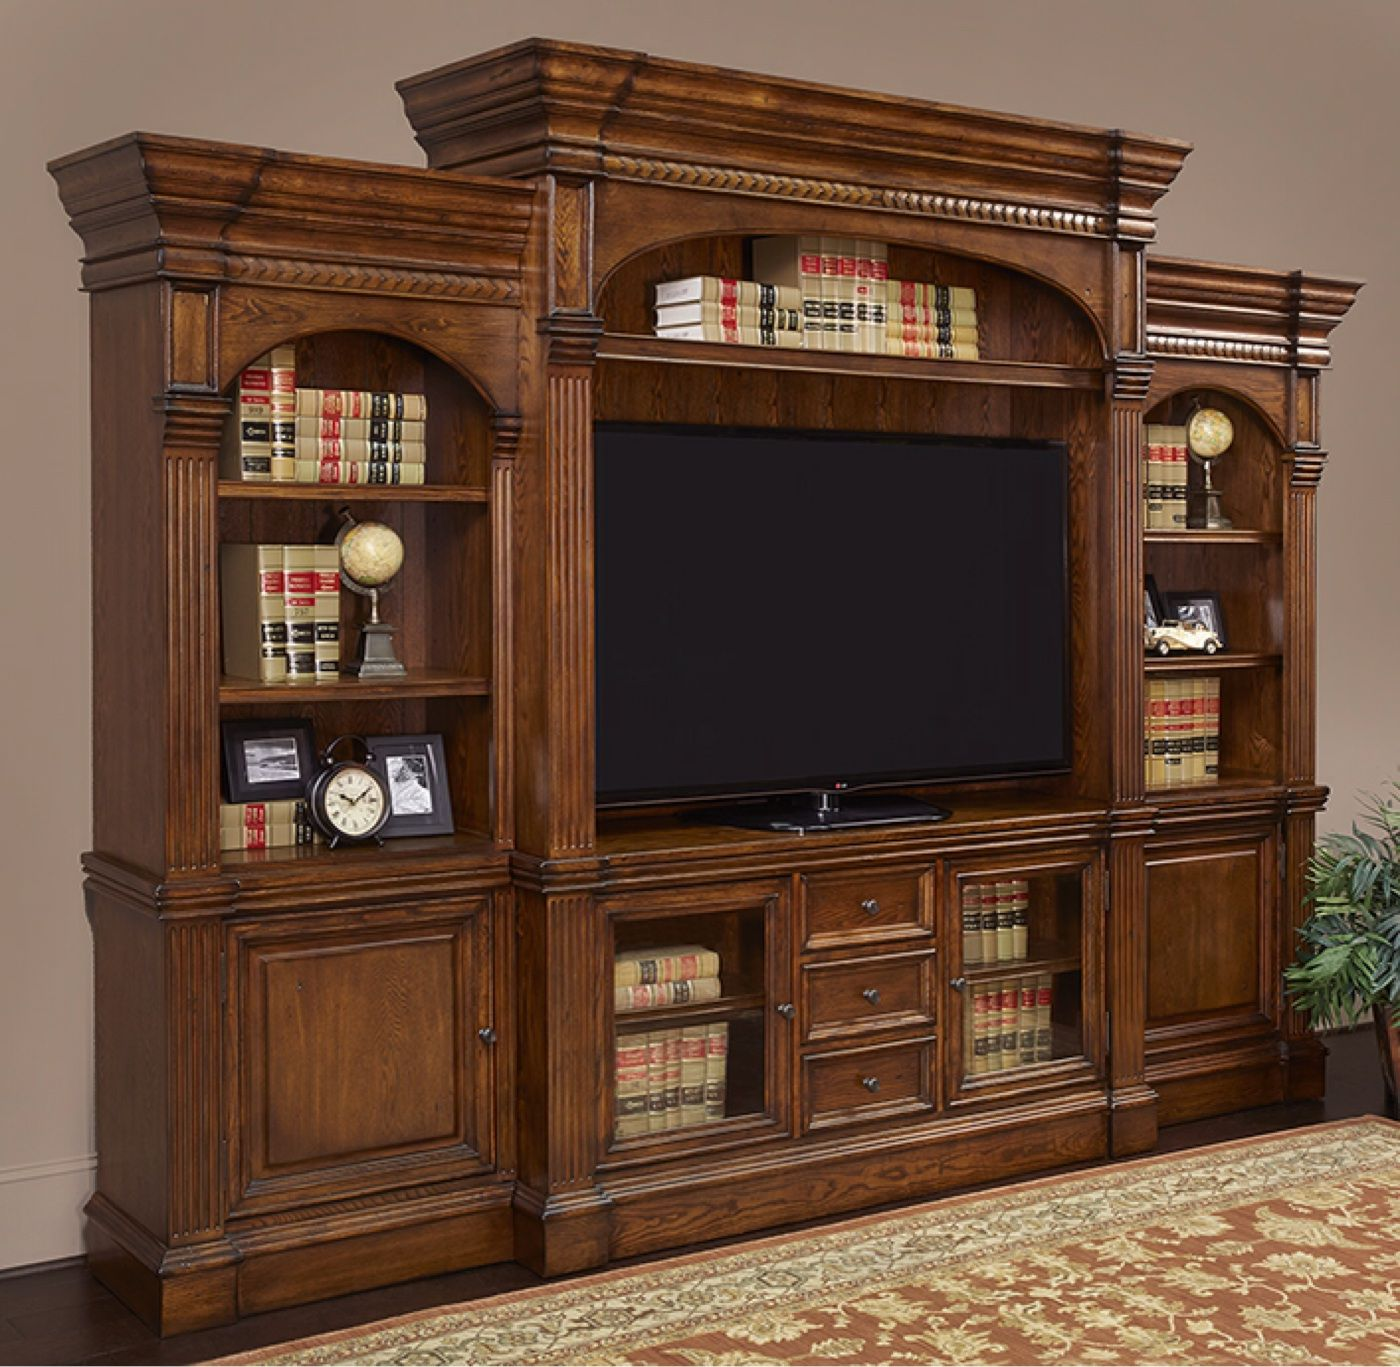 High Quality A Wall Media Entertainment Center Like This Deserves A Special Place In The  Home! #